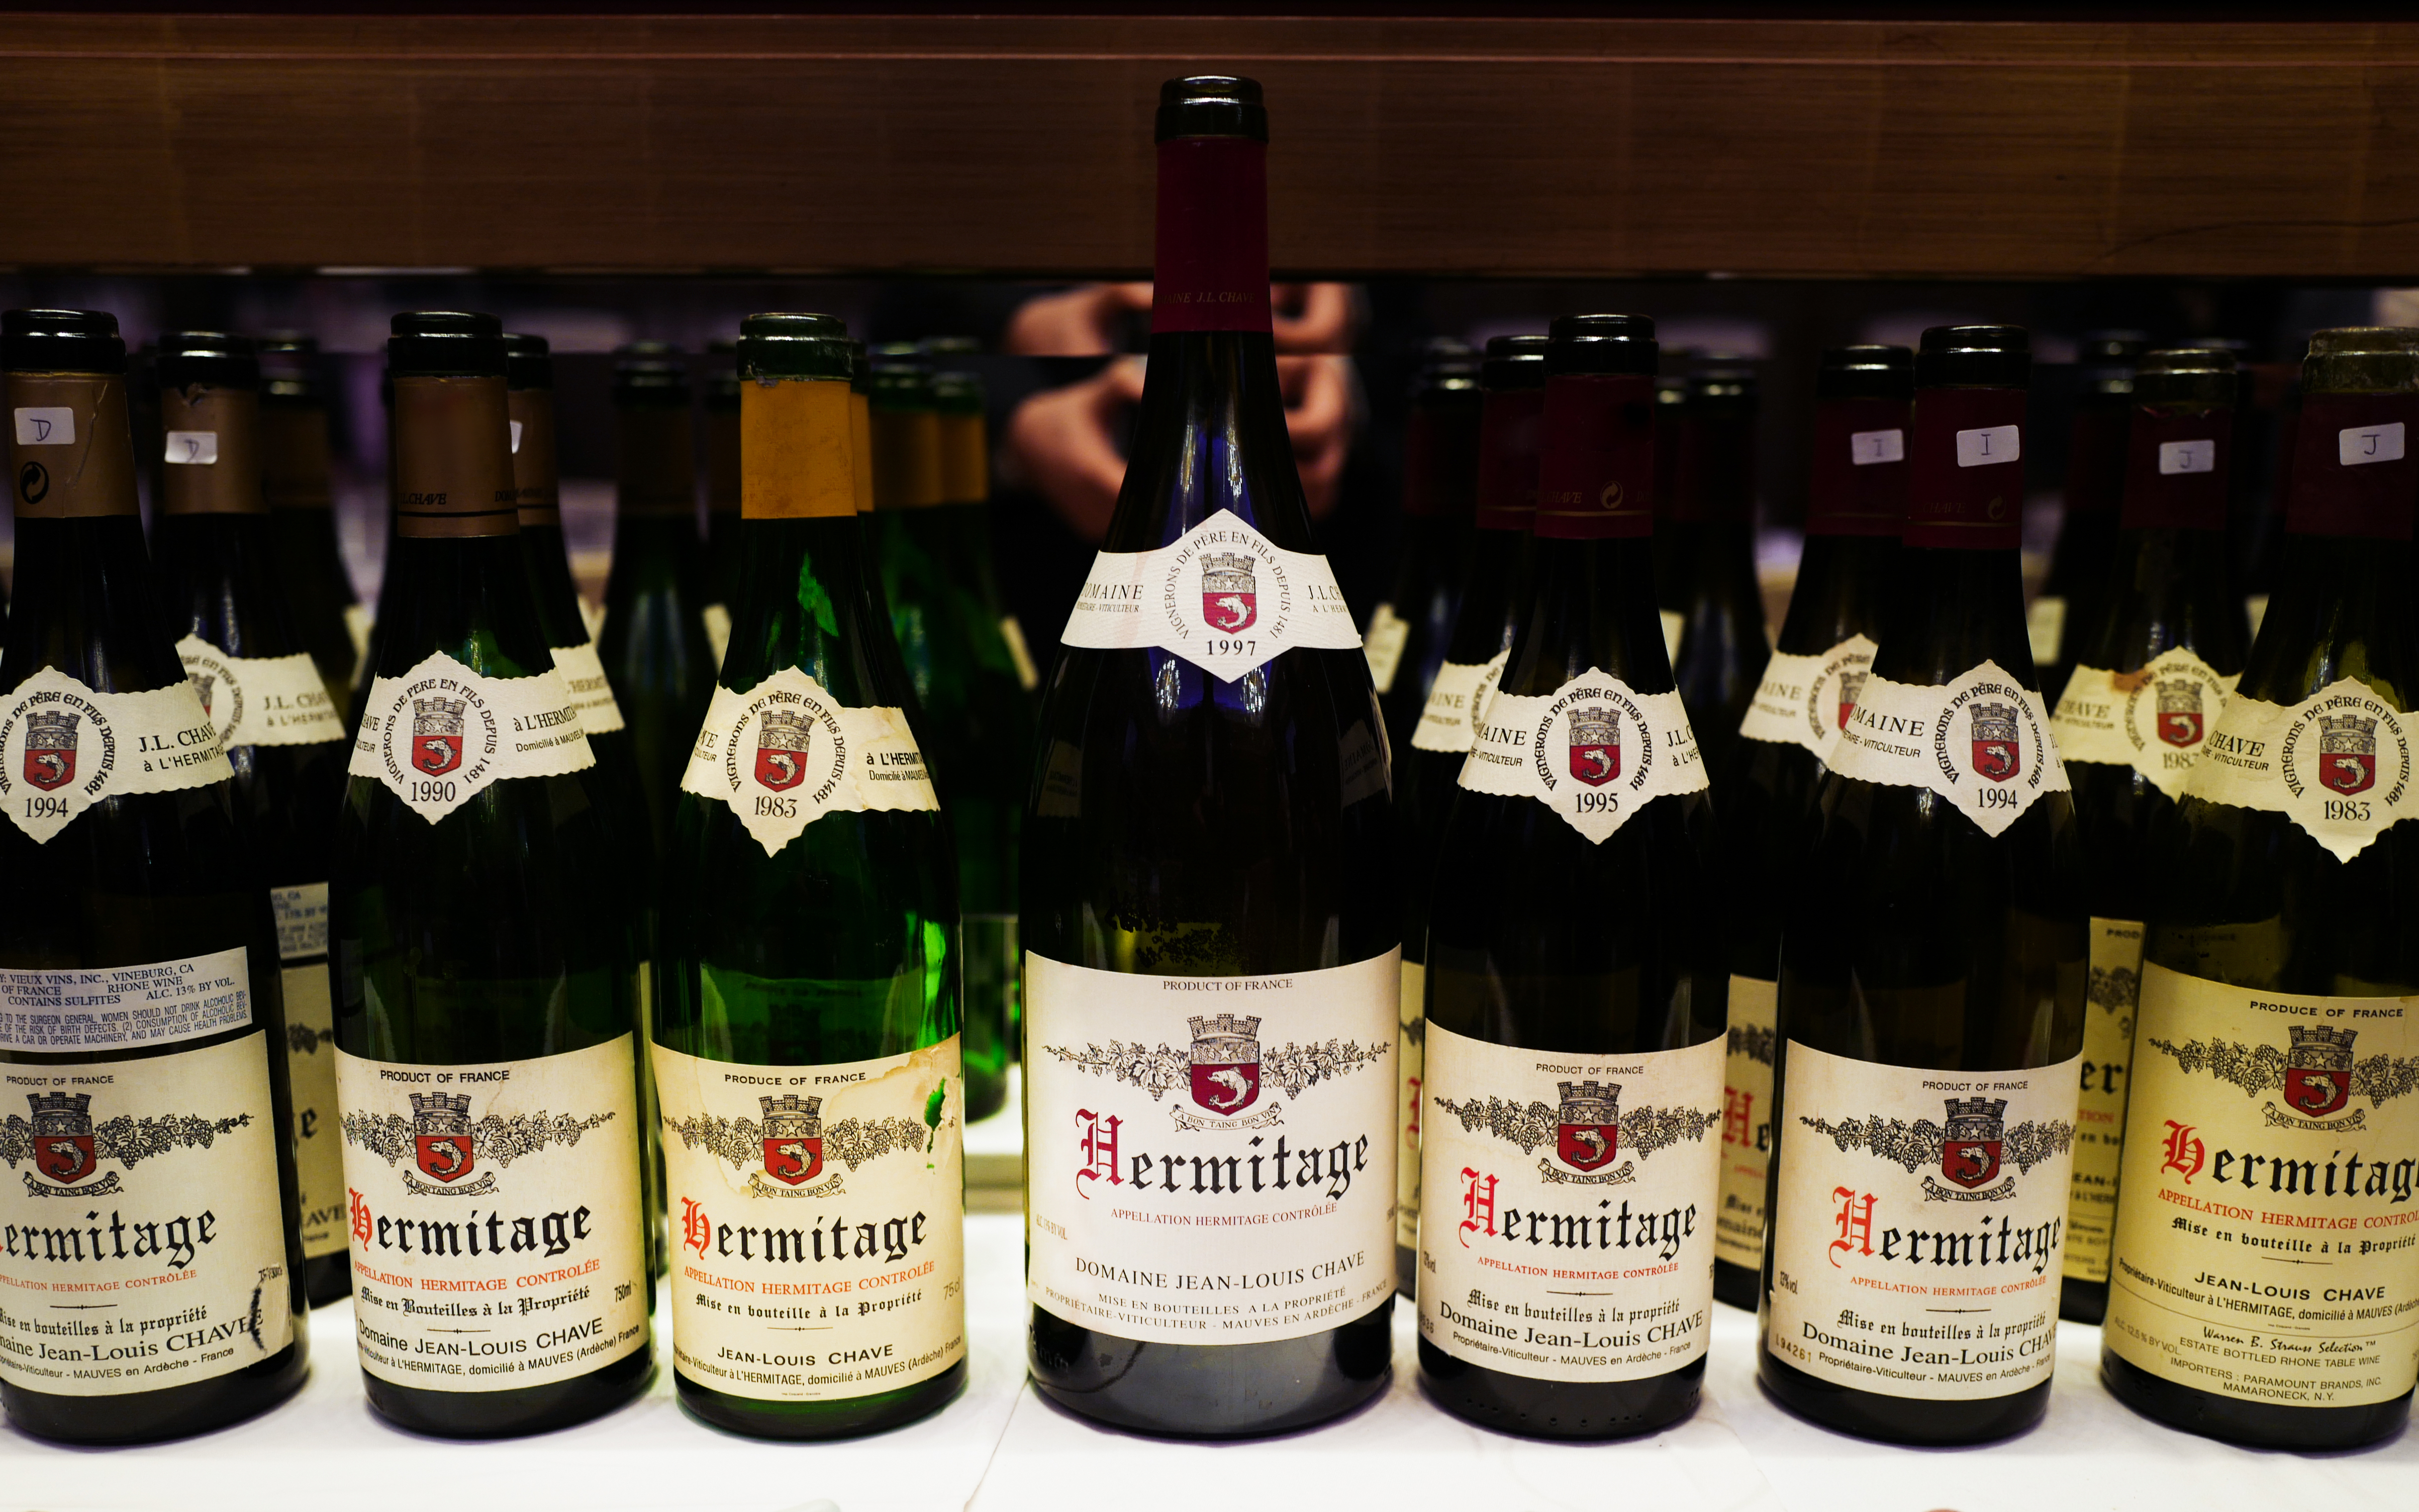 Domaine J-L Chave Hermitage Dinner in Singapore: Mature Vintages Back to the 1970s